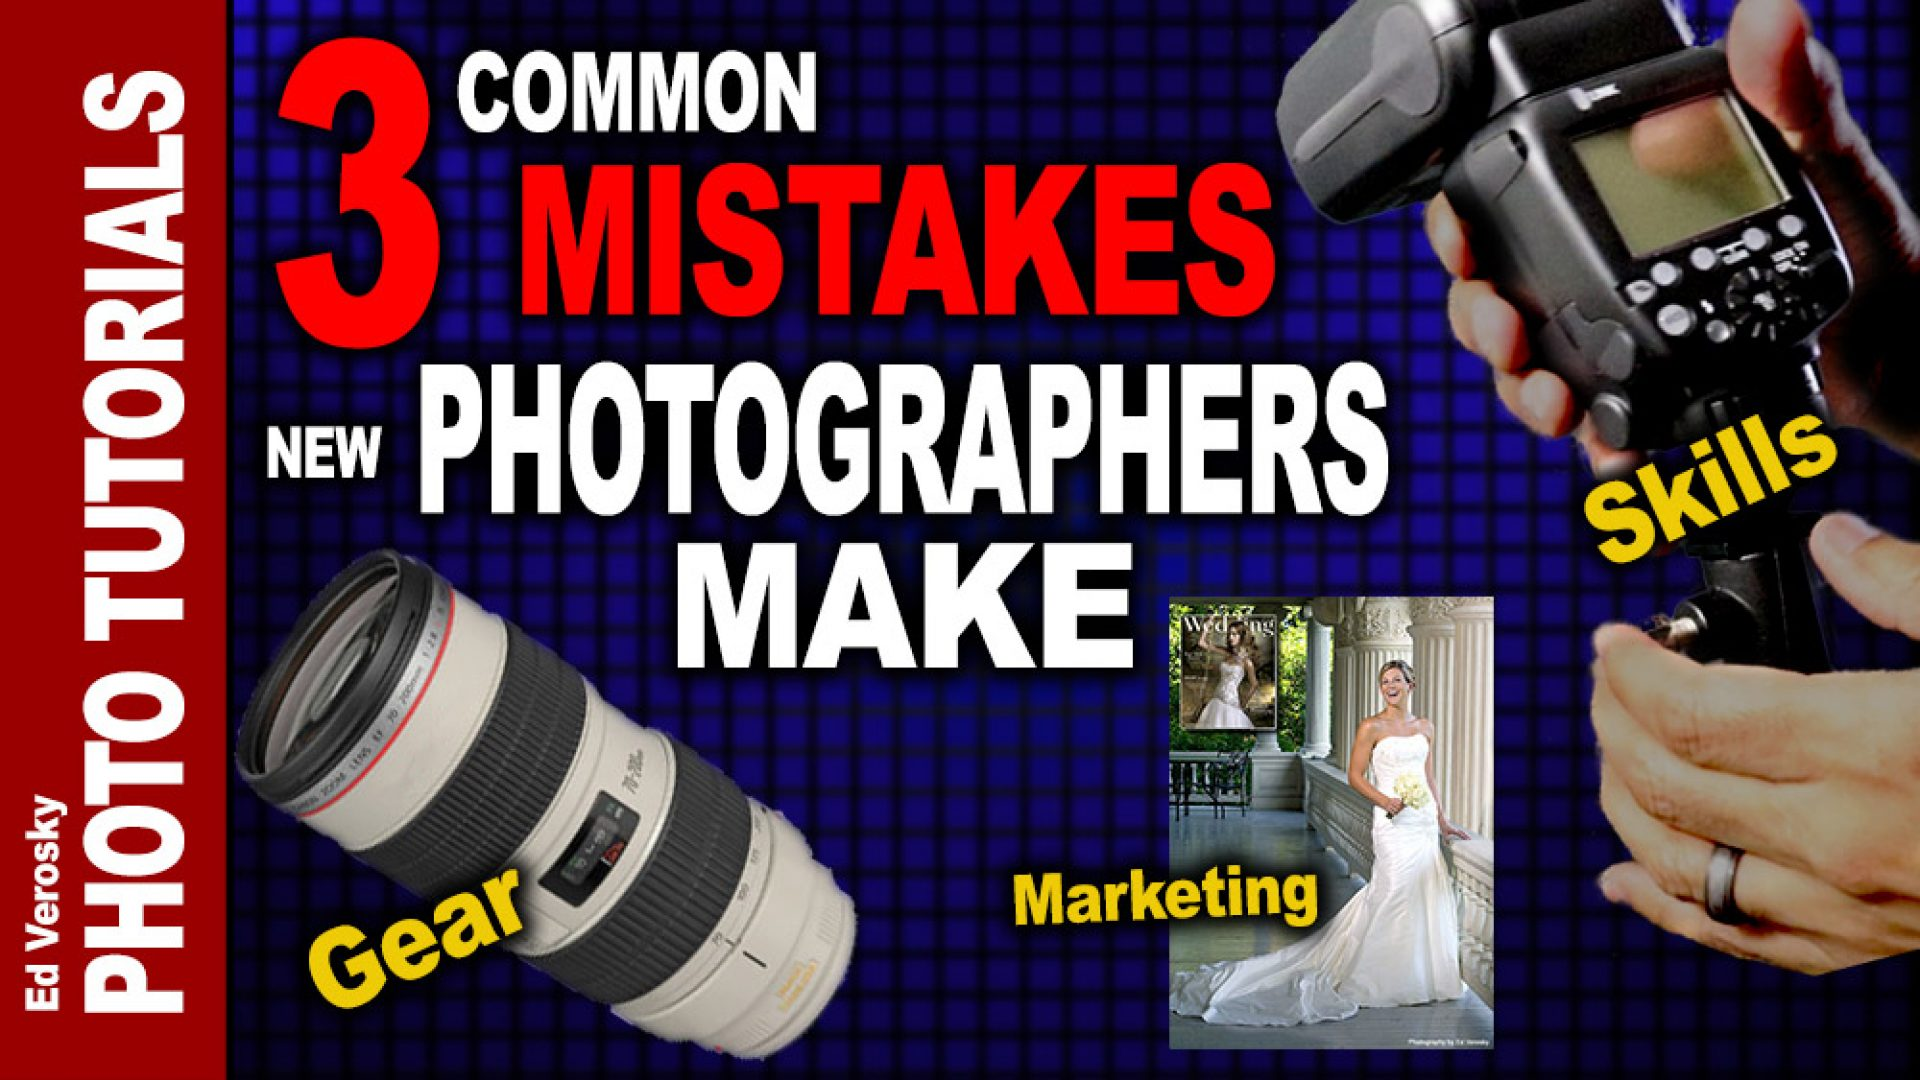 3-common-mistakes-thumb